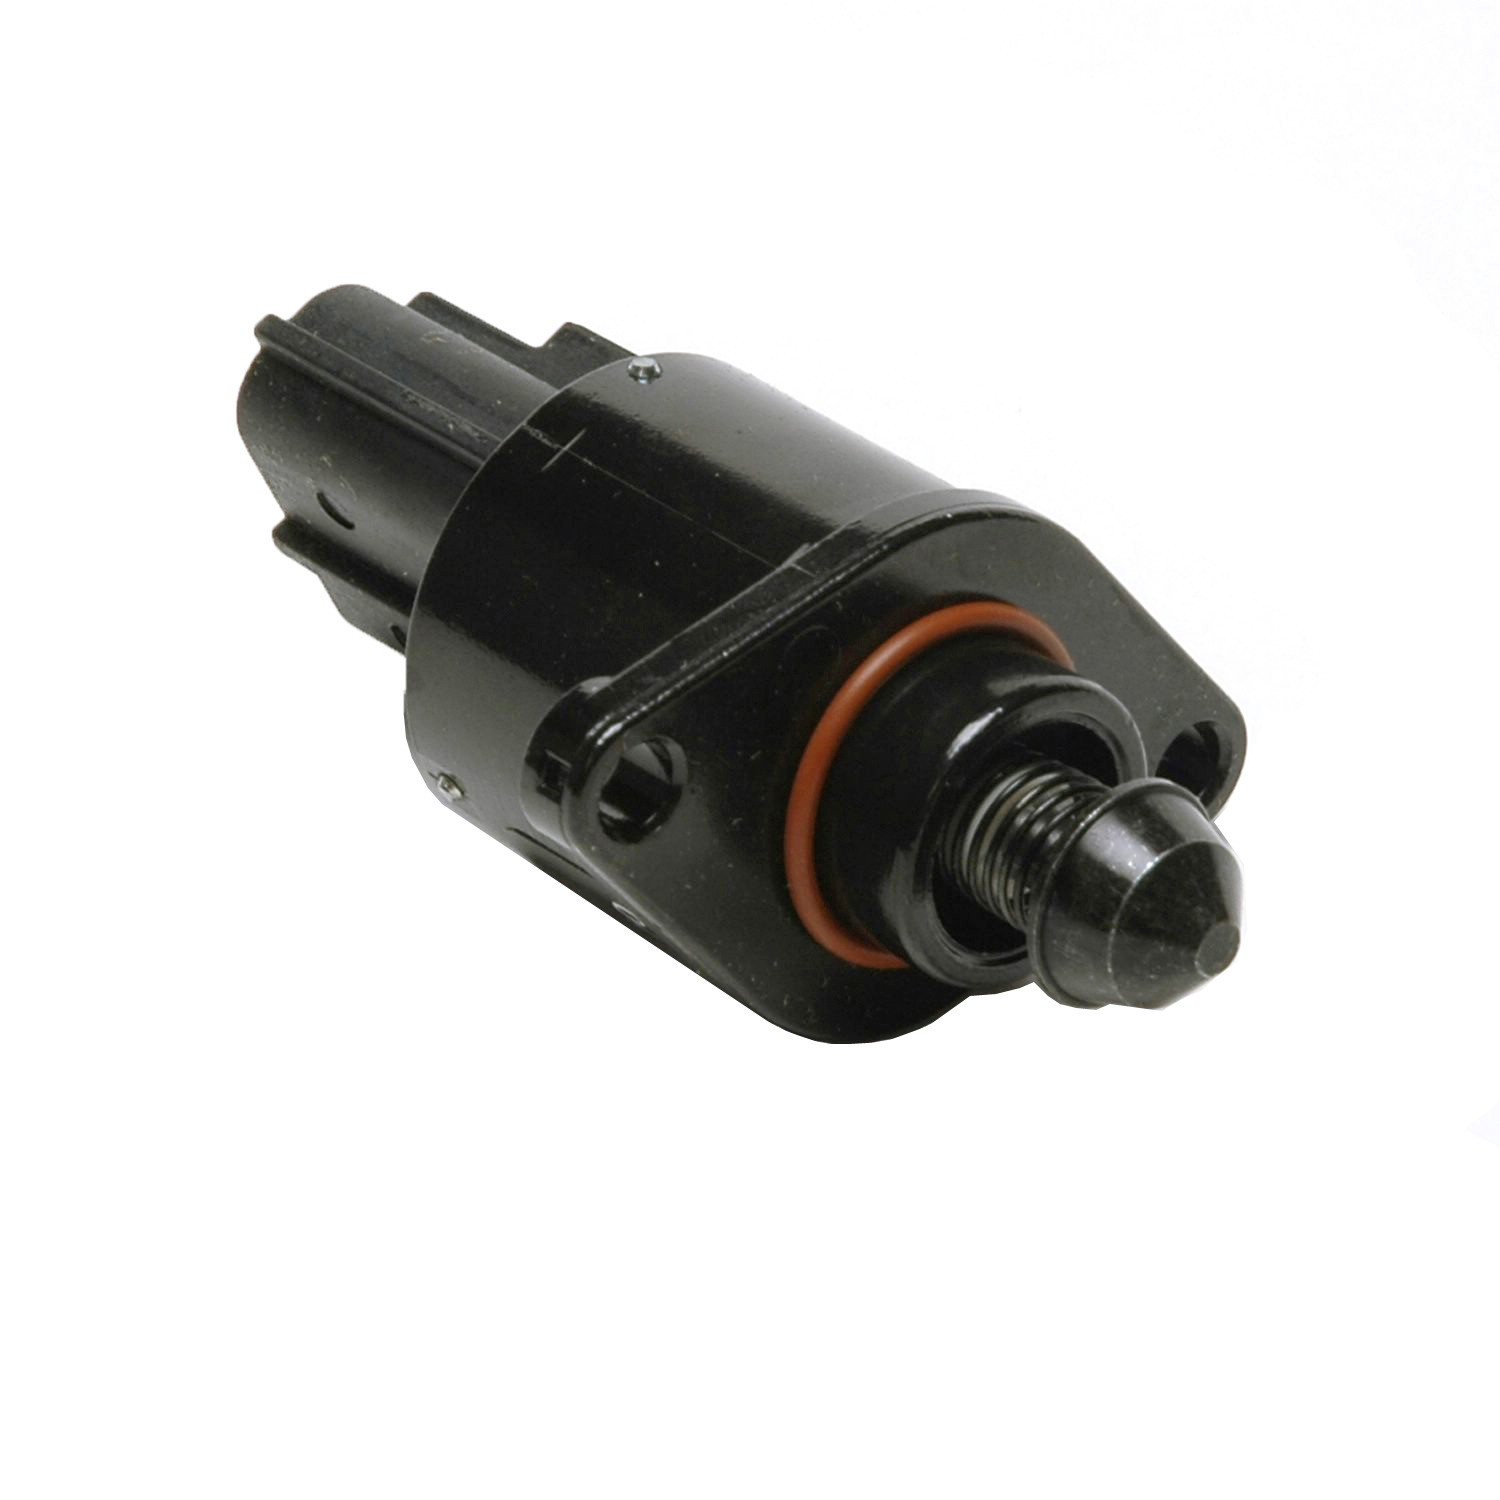 hight resolution of 2001 chrysler concorde fuel injection idle air control valve de cv10156